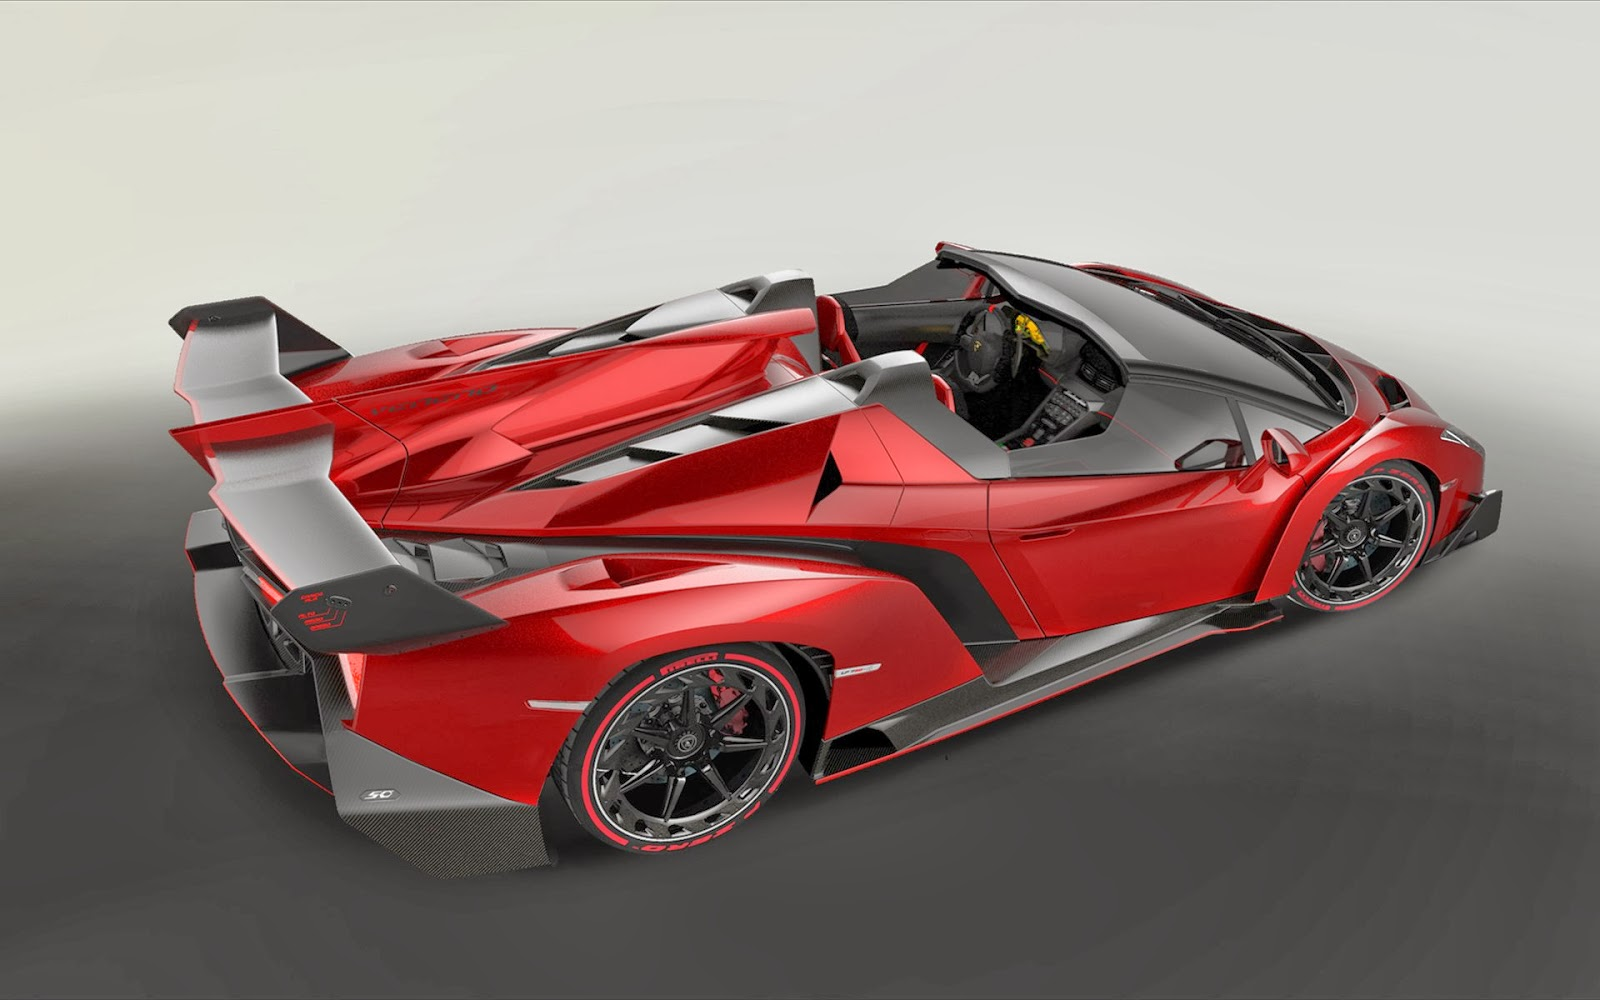 Lamborghini Veneno Roadster Price In Rupees Traffic Club